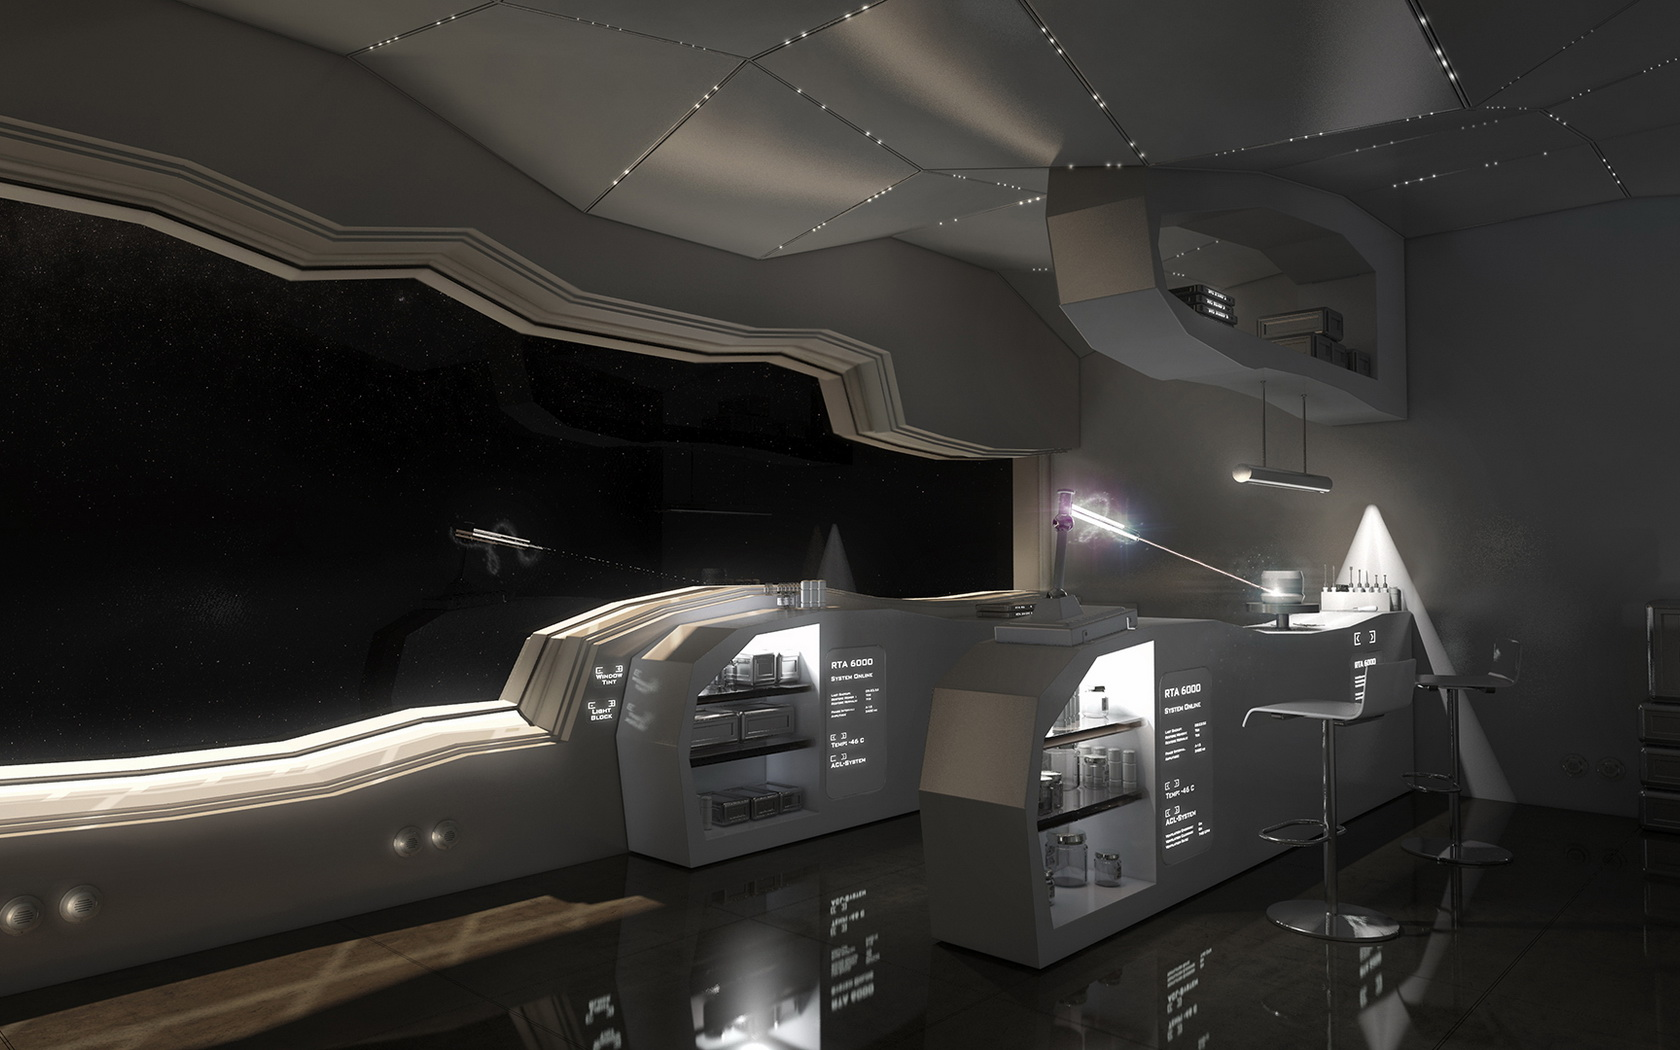 Space Ship Interior (page 2)